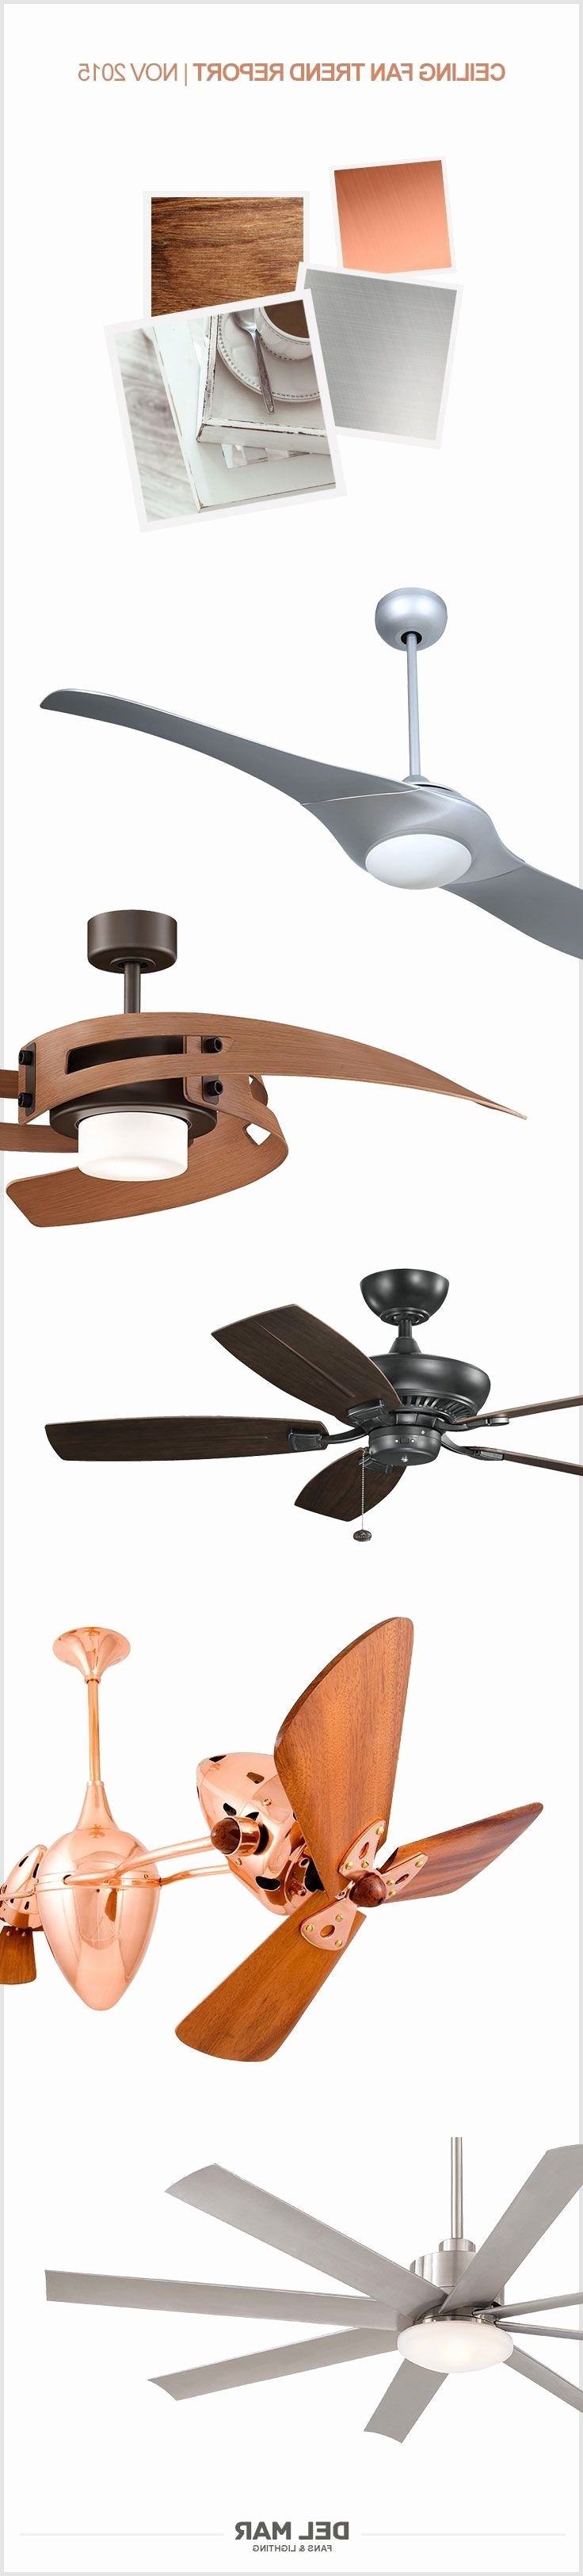 High Cfm Ceiling Fan Outdoor – Ceiling Design Ideas Regarding Fashionable Outdoor Ceiling Fans With High Cfm (View 14 of 20)